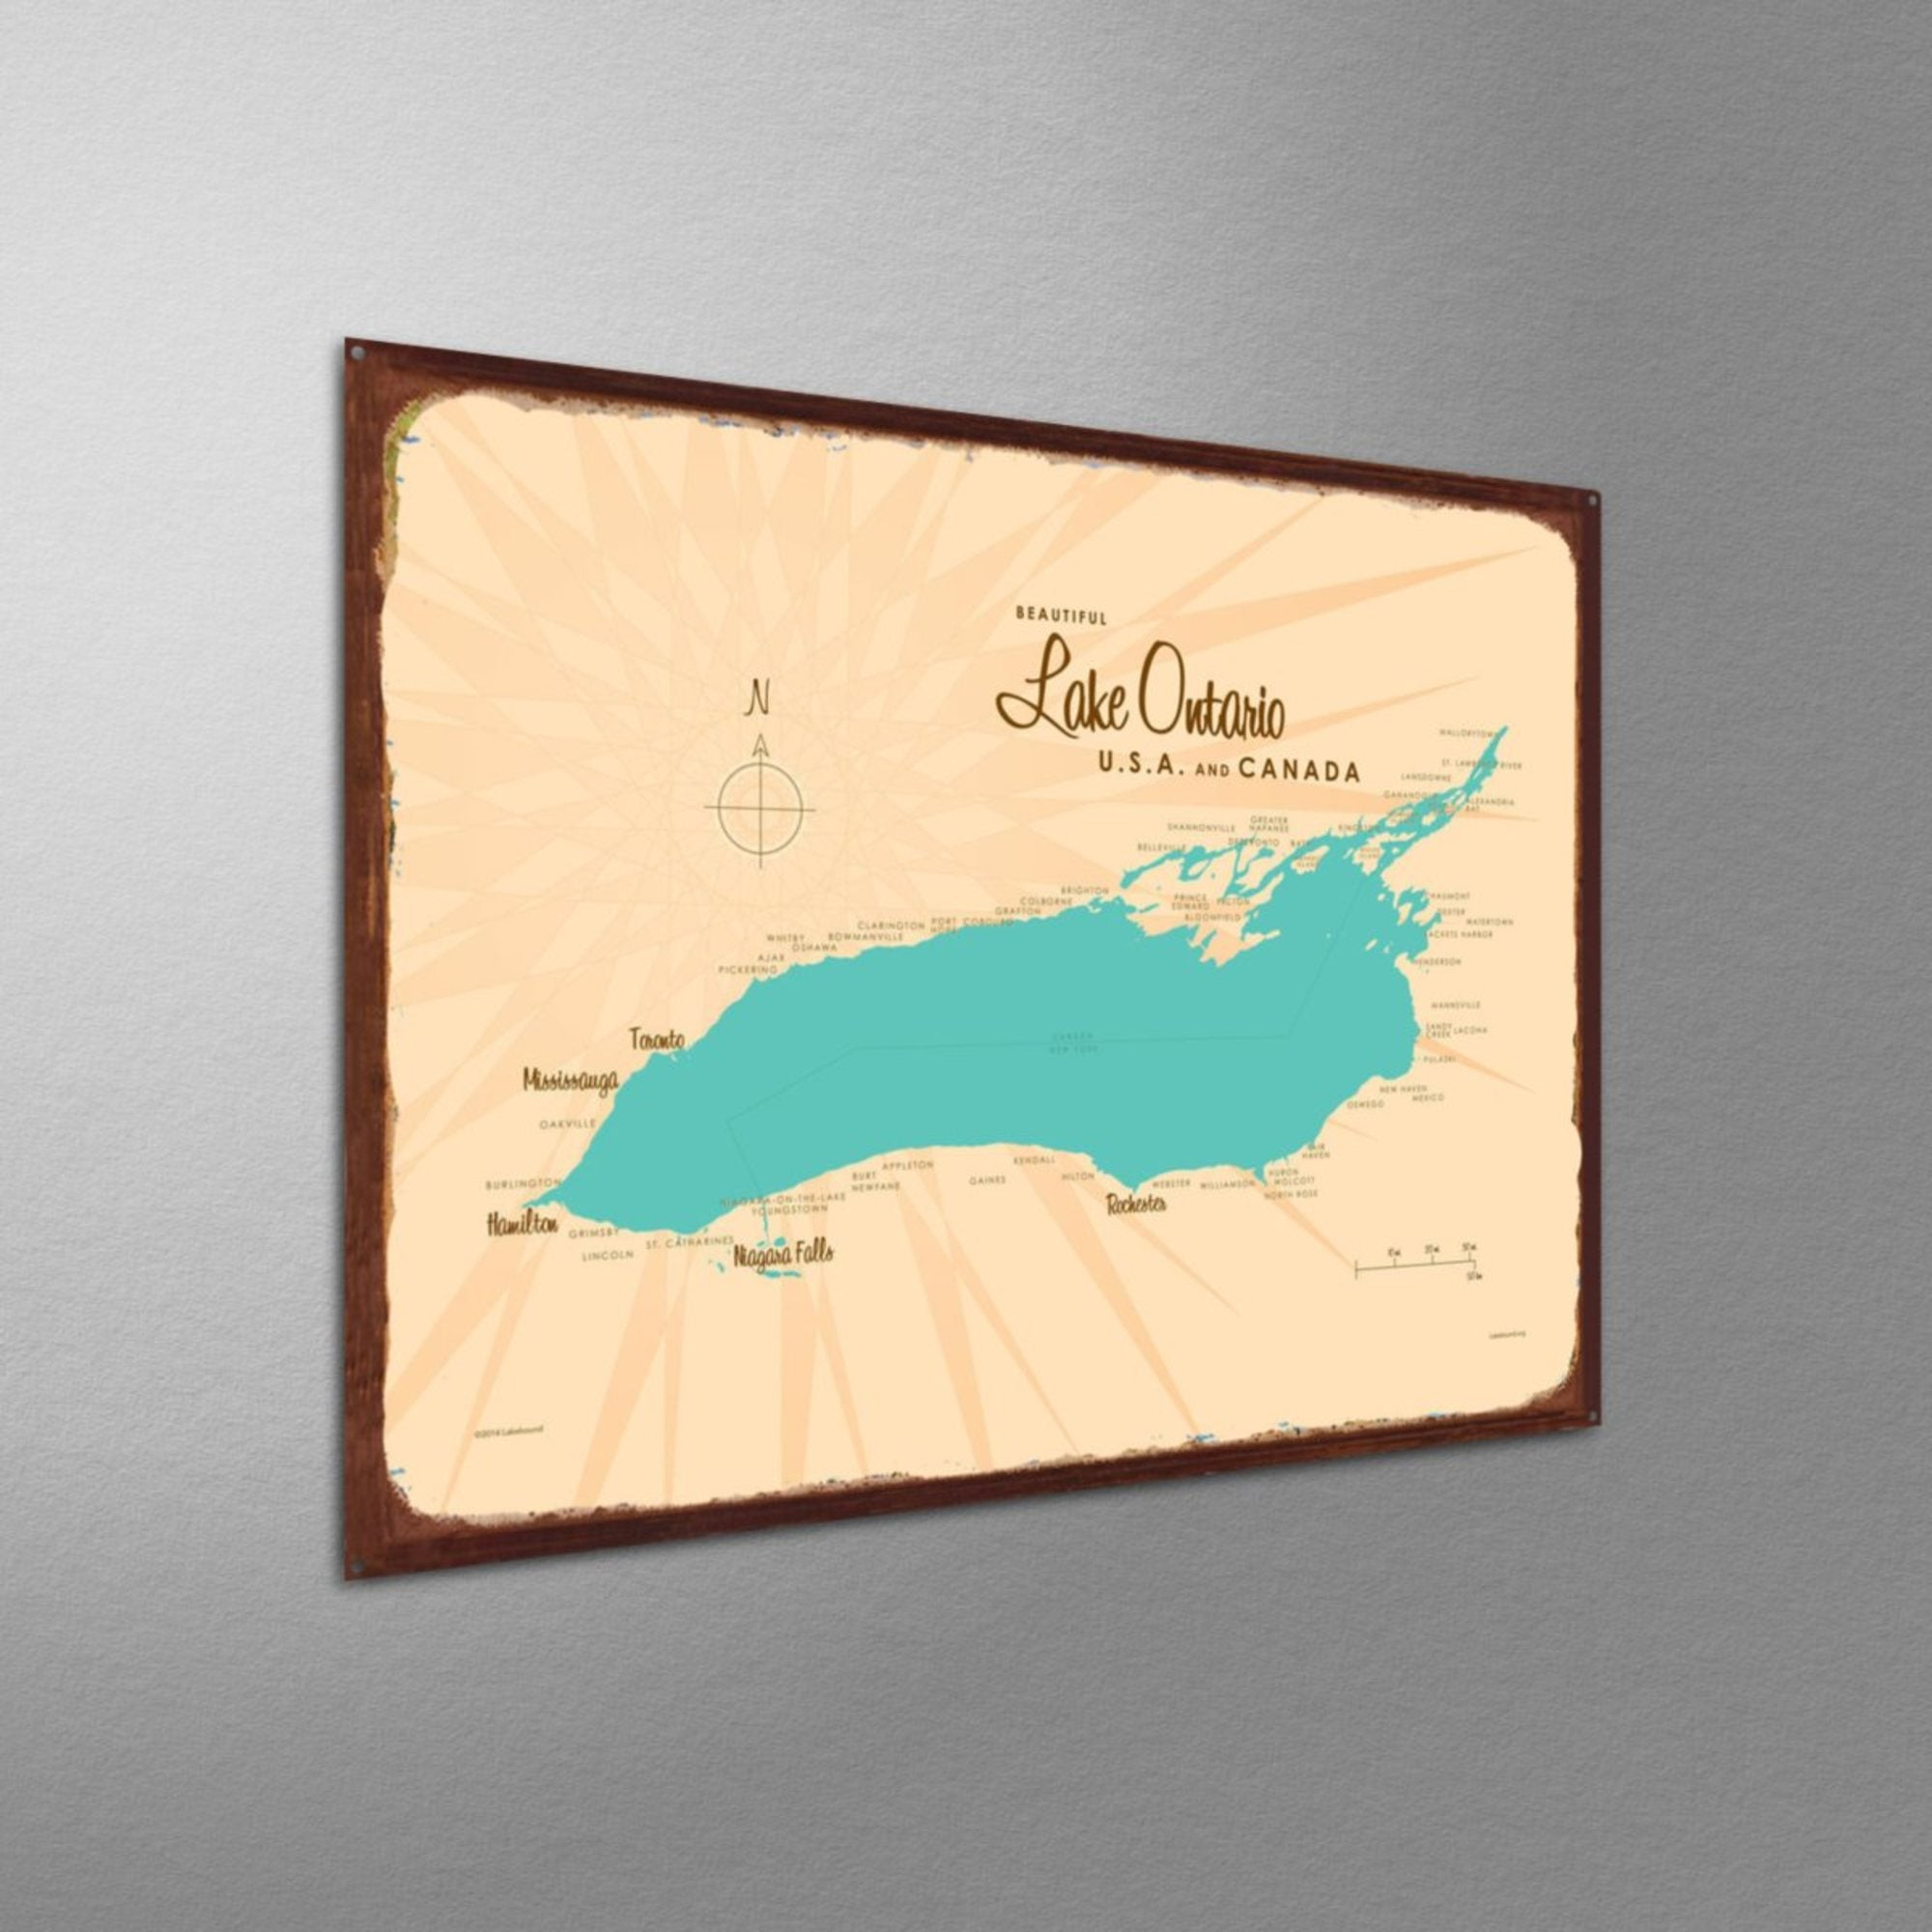 Lake Ontario New York, Rustic Metal Sign Map Art